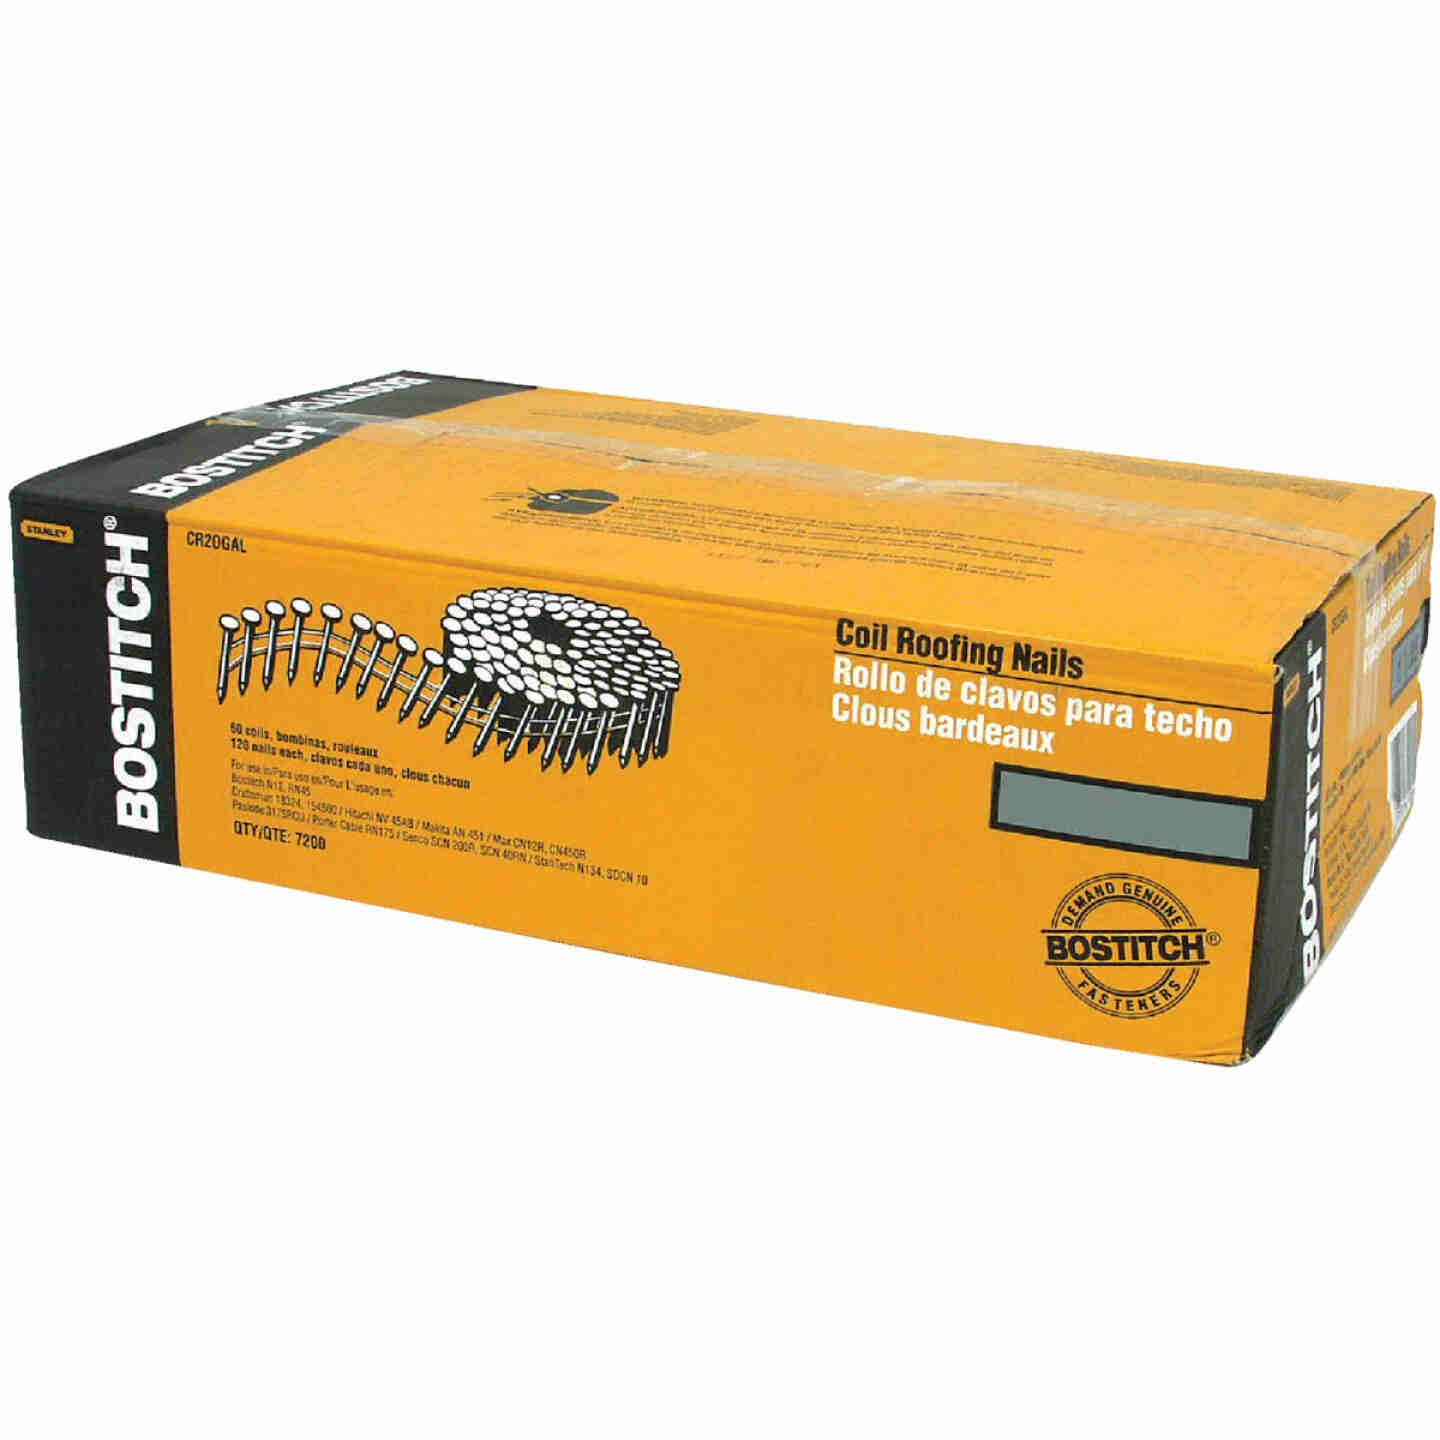 Bostitch 15 Degree Wire Weld Galvanized Coil Roofing Nail, 7/8 In. x .120 In. (7200 Ct.) Image 1